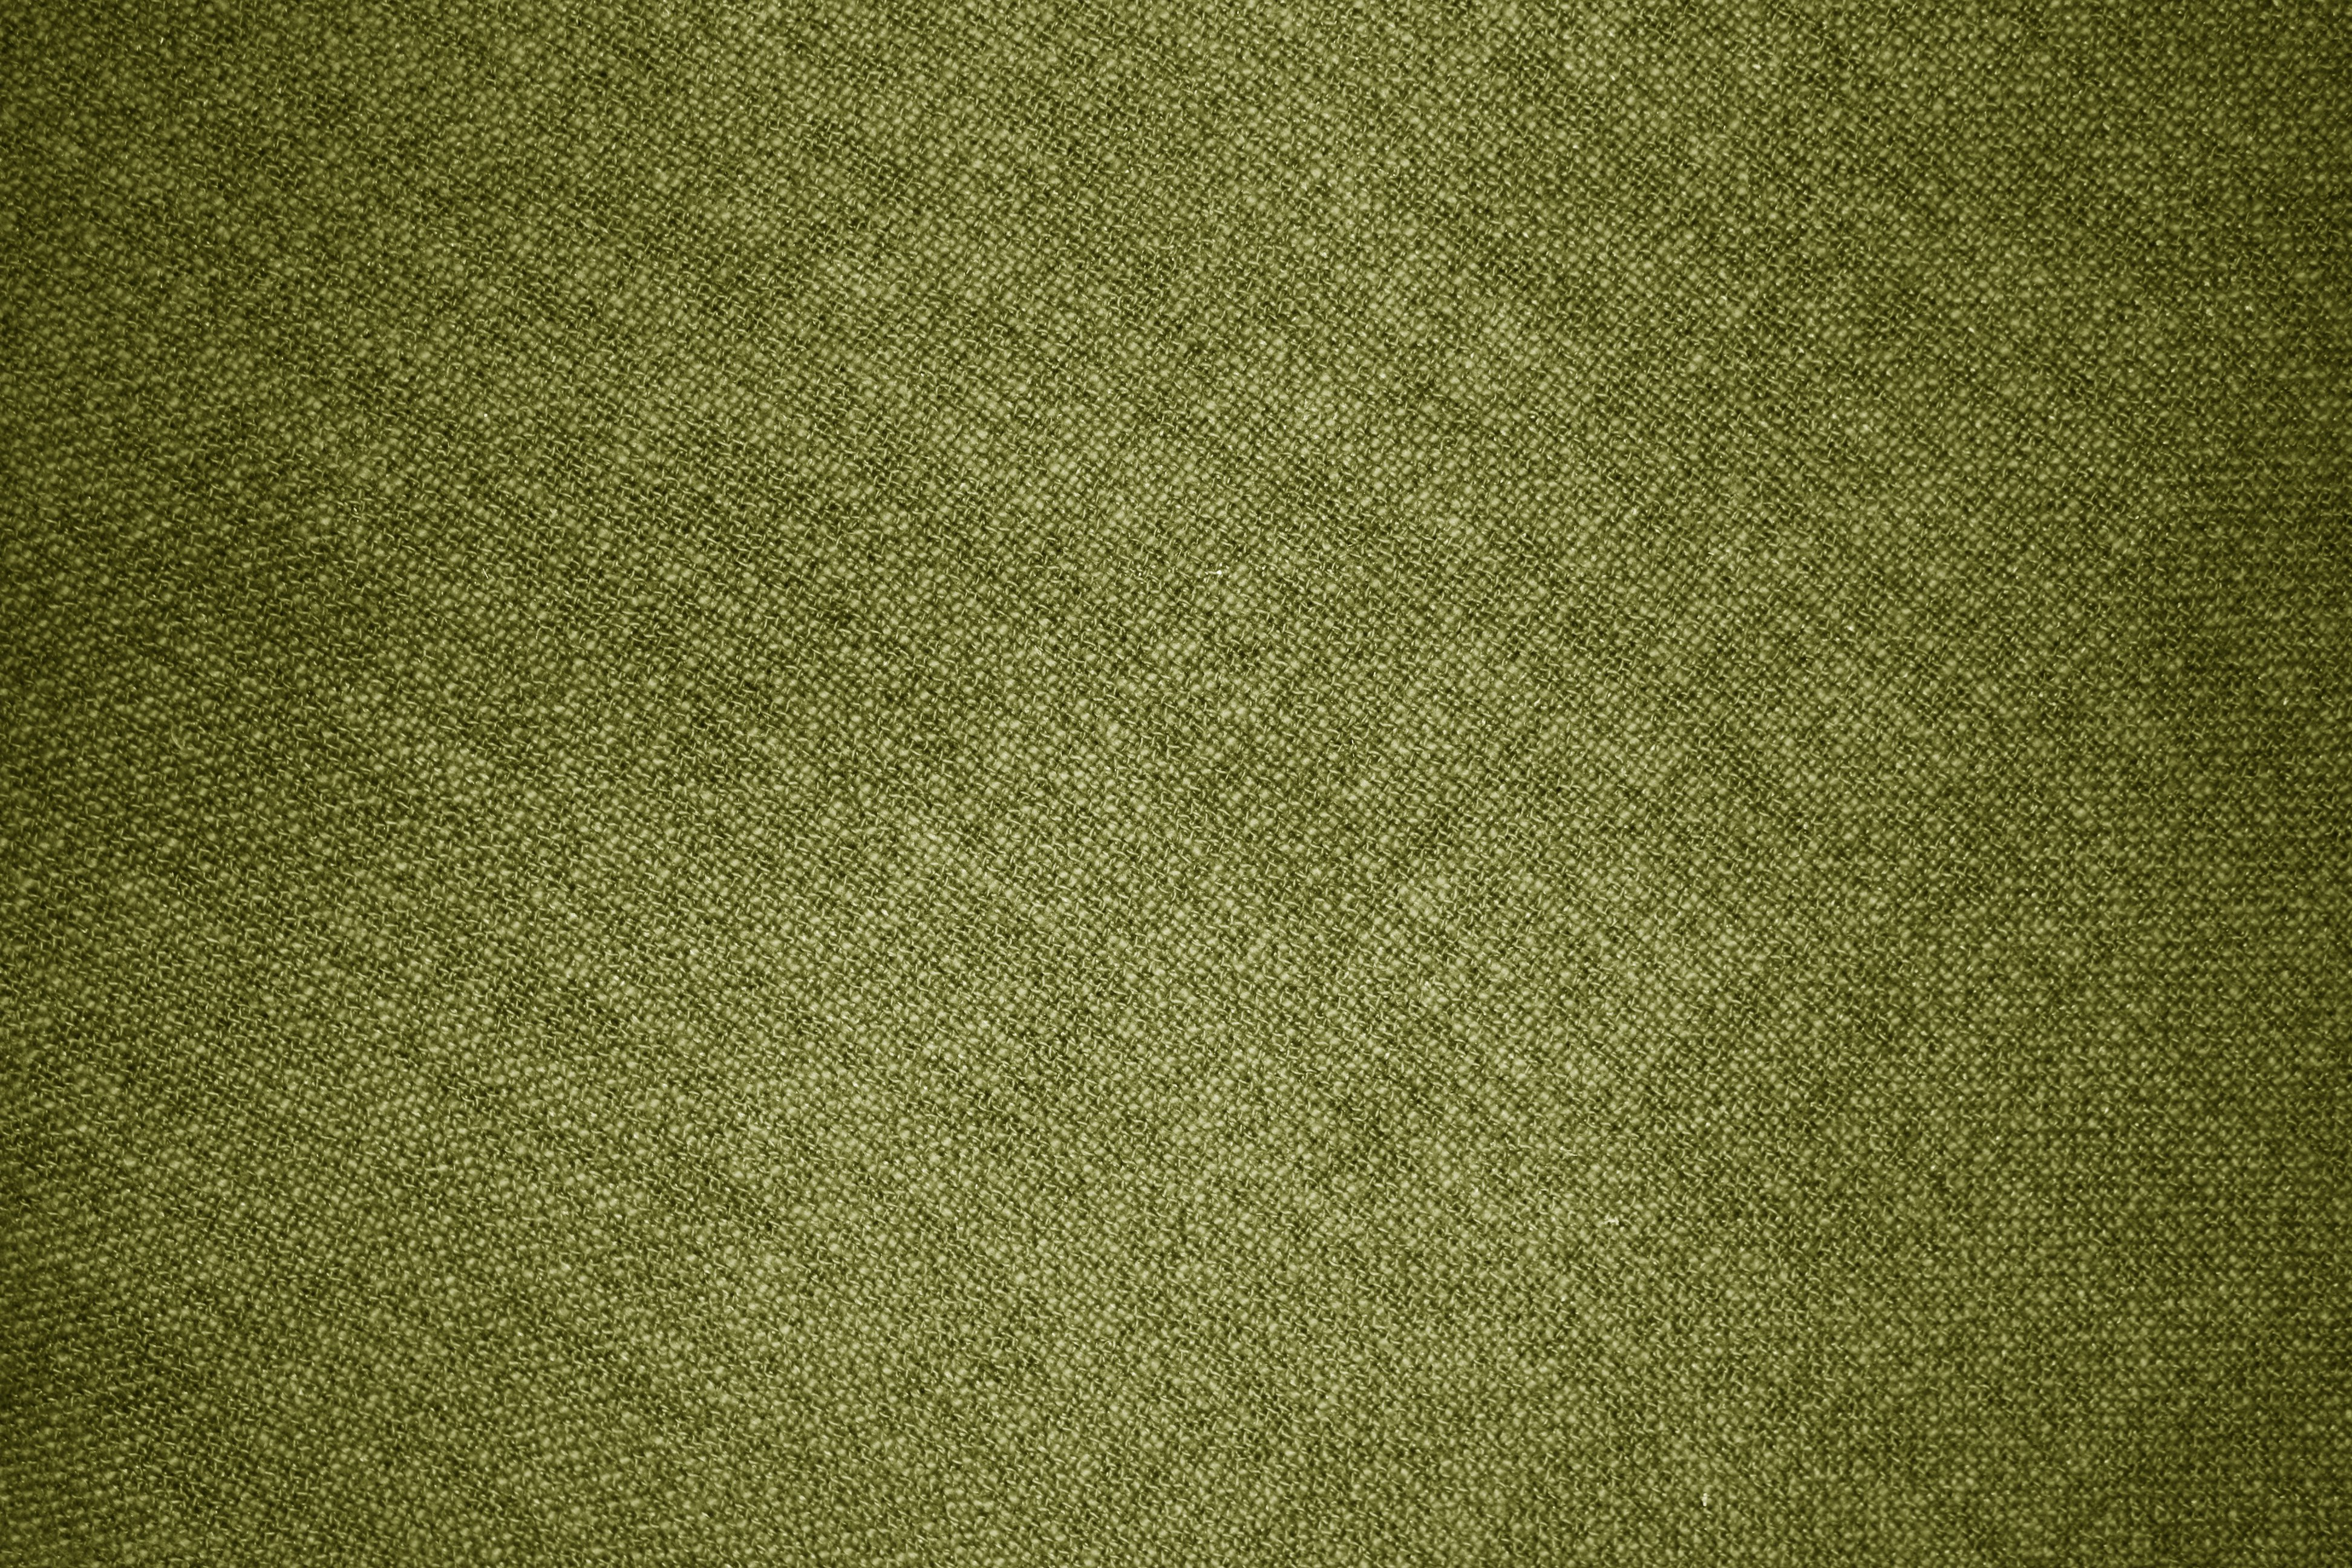 Olive Green Fabric Texture Picture Photograph 3888x2592